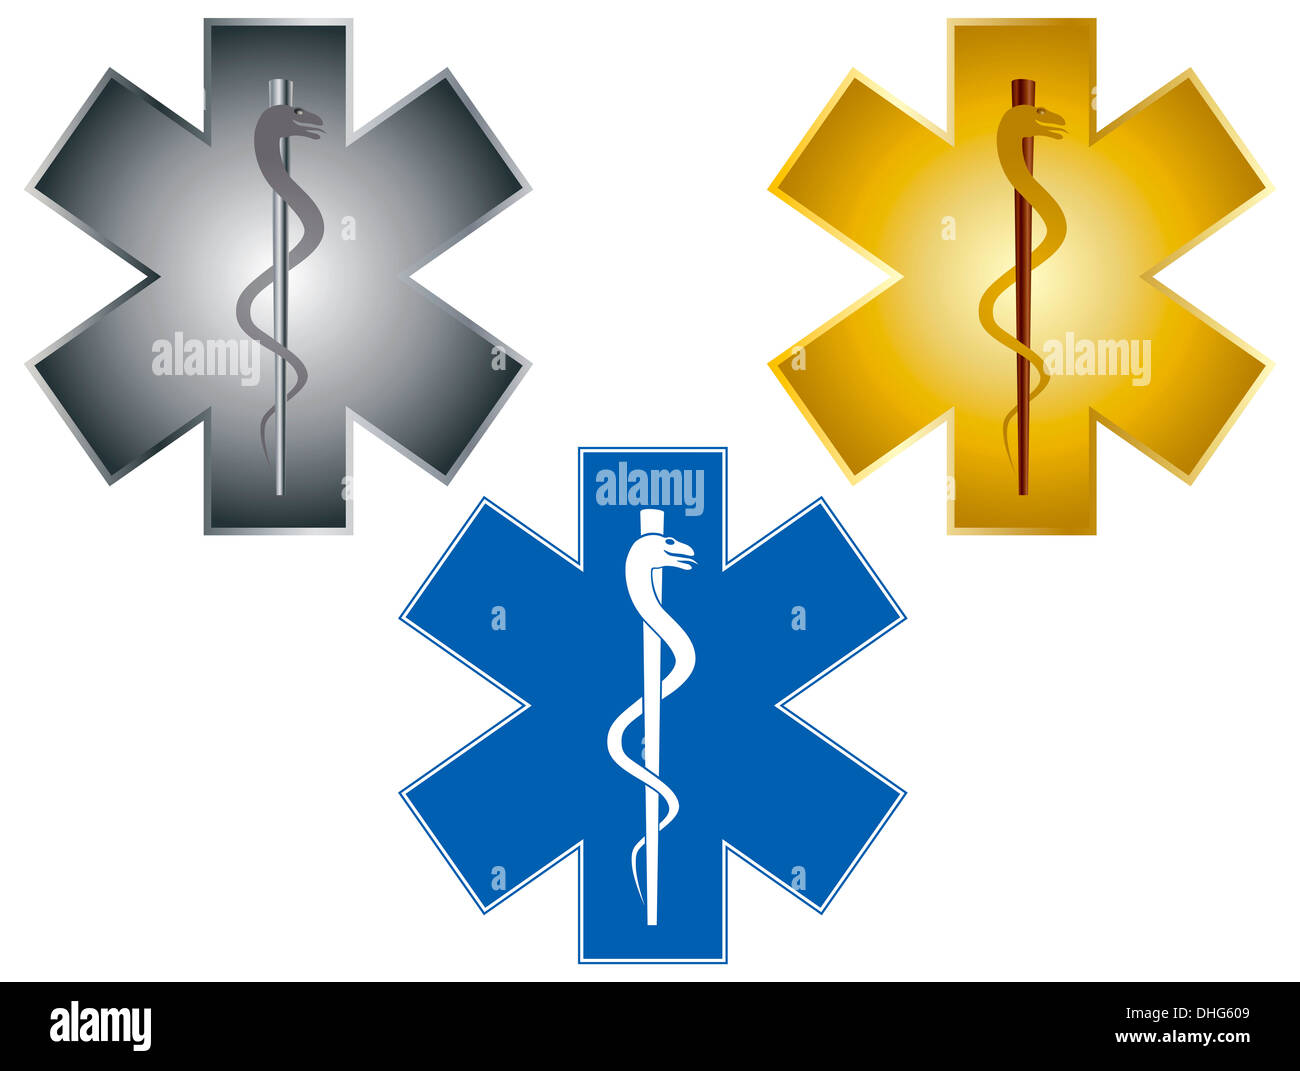 A gold rod of asclepius medical symbol or symbol featuring a snake star of life rod of asclepius medical symbol for ambulance isolated on white background illustration buycottarizona Image collections